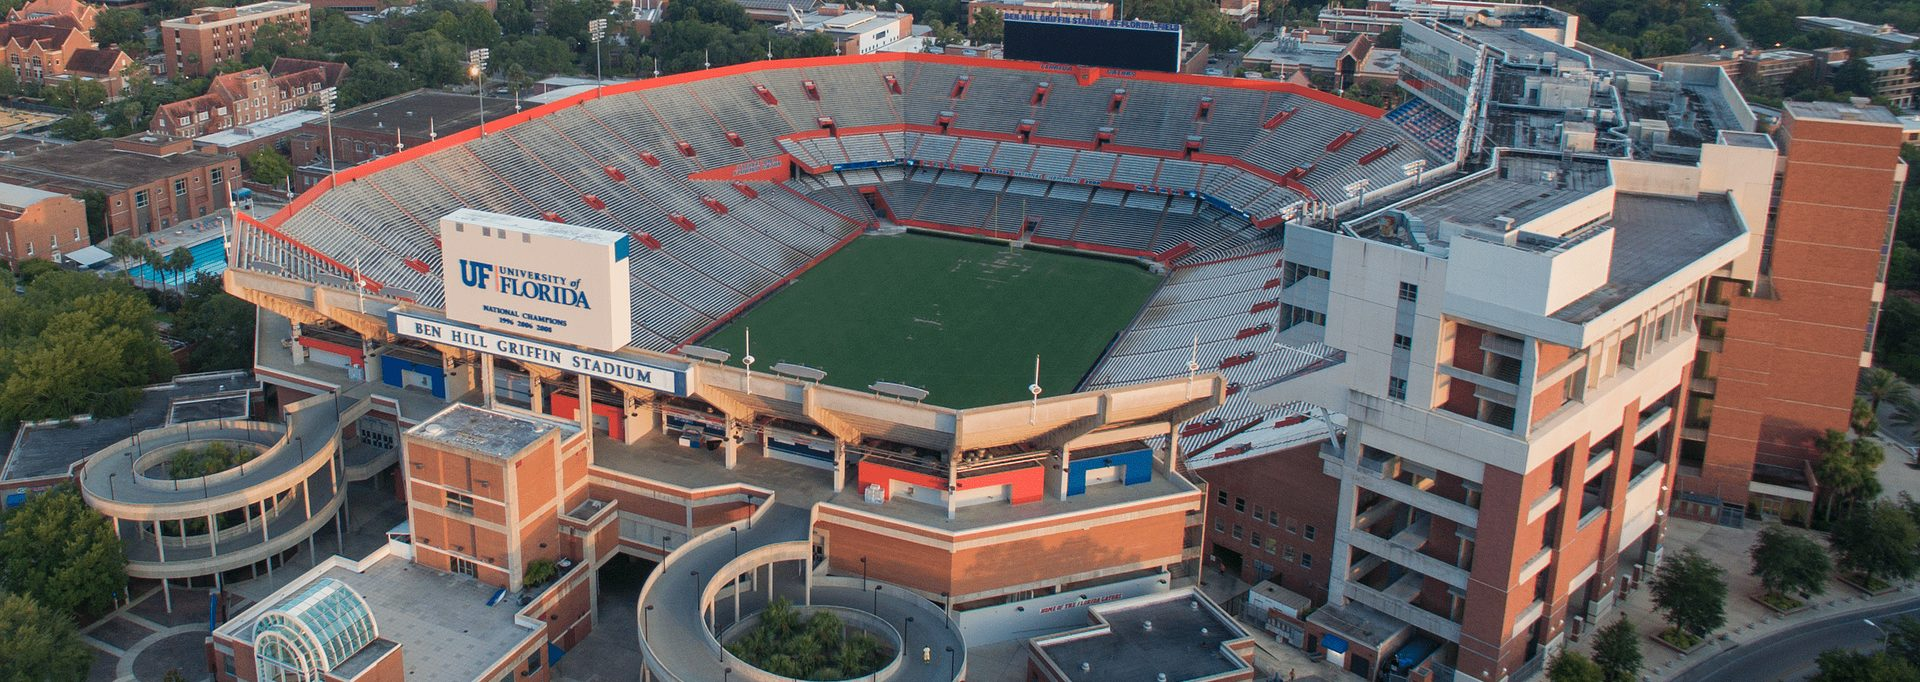 Things to Do in Gainesville Ben Hill Griffin